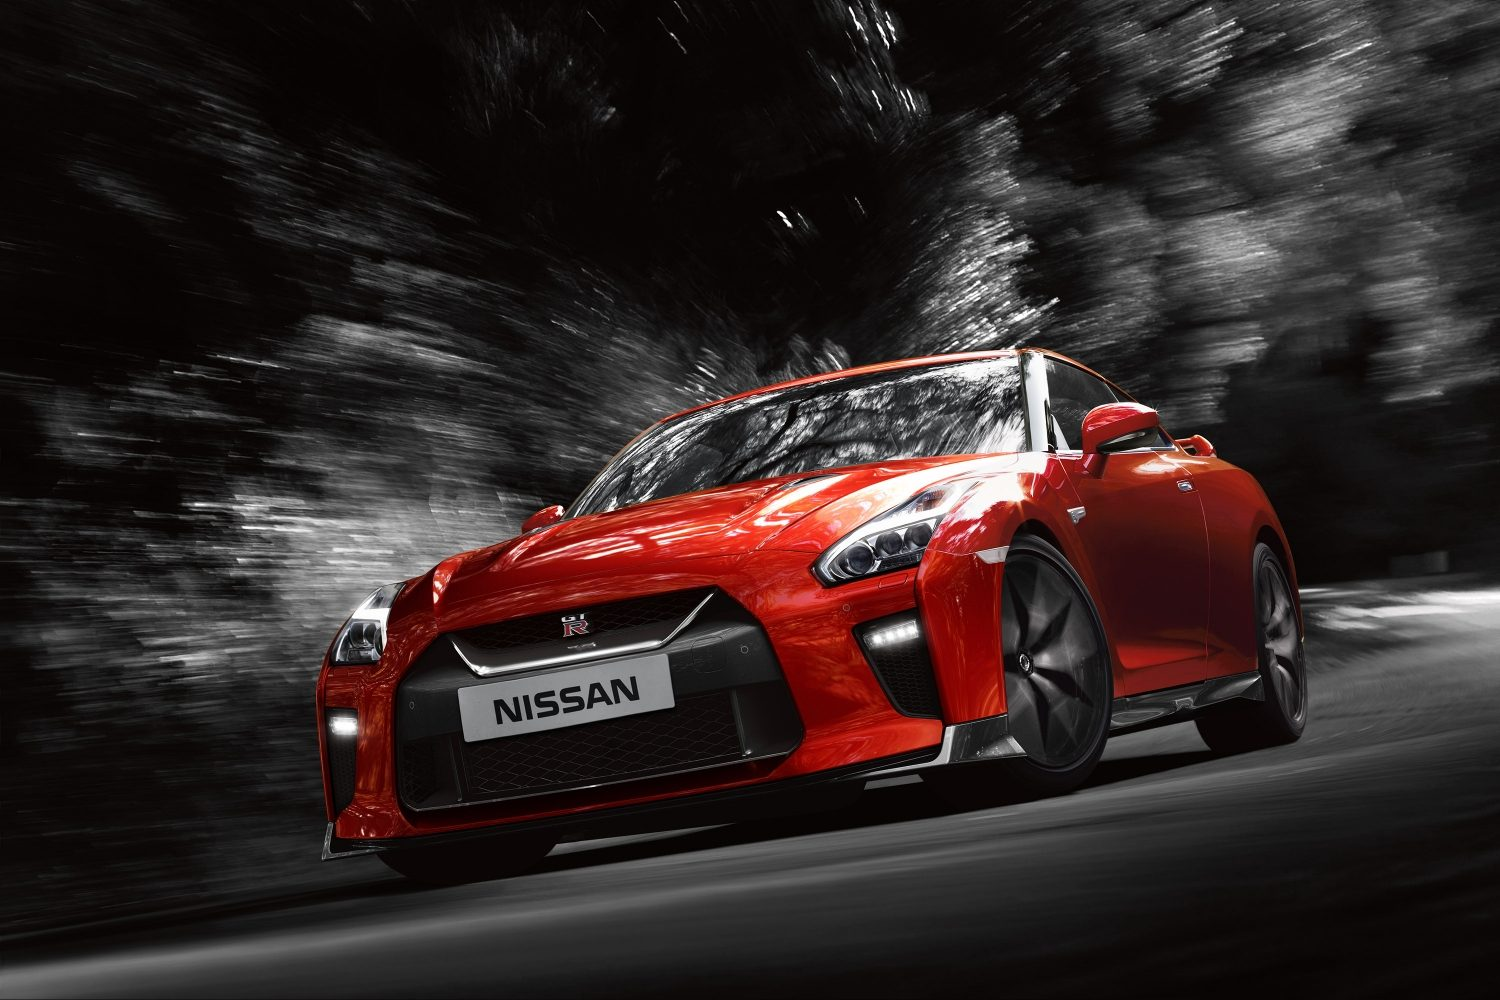 GT-R driving on road